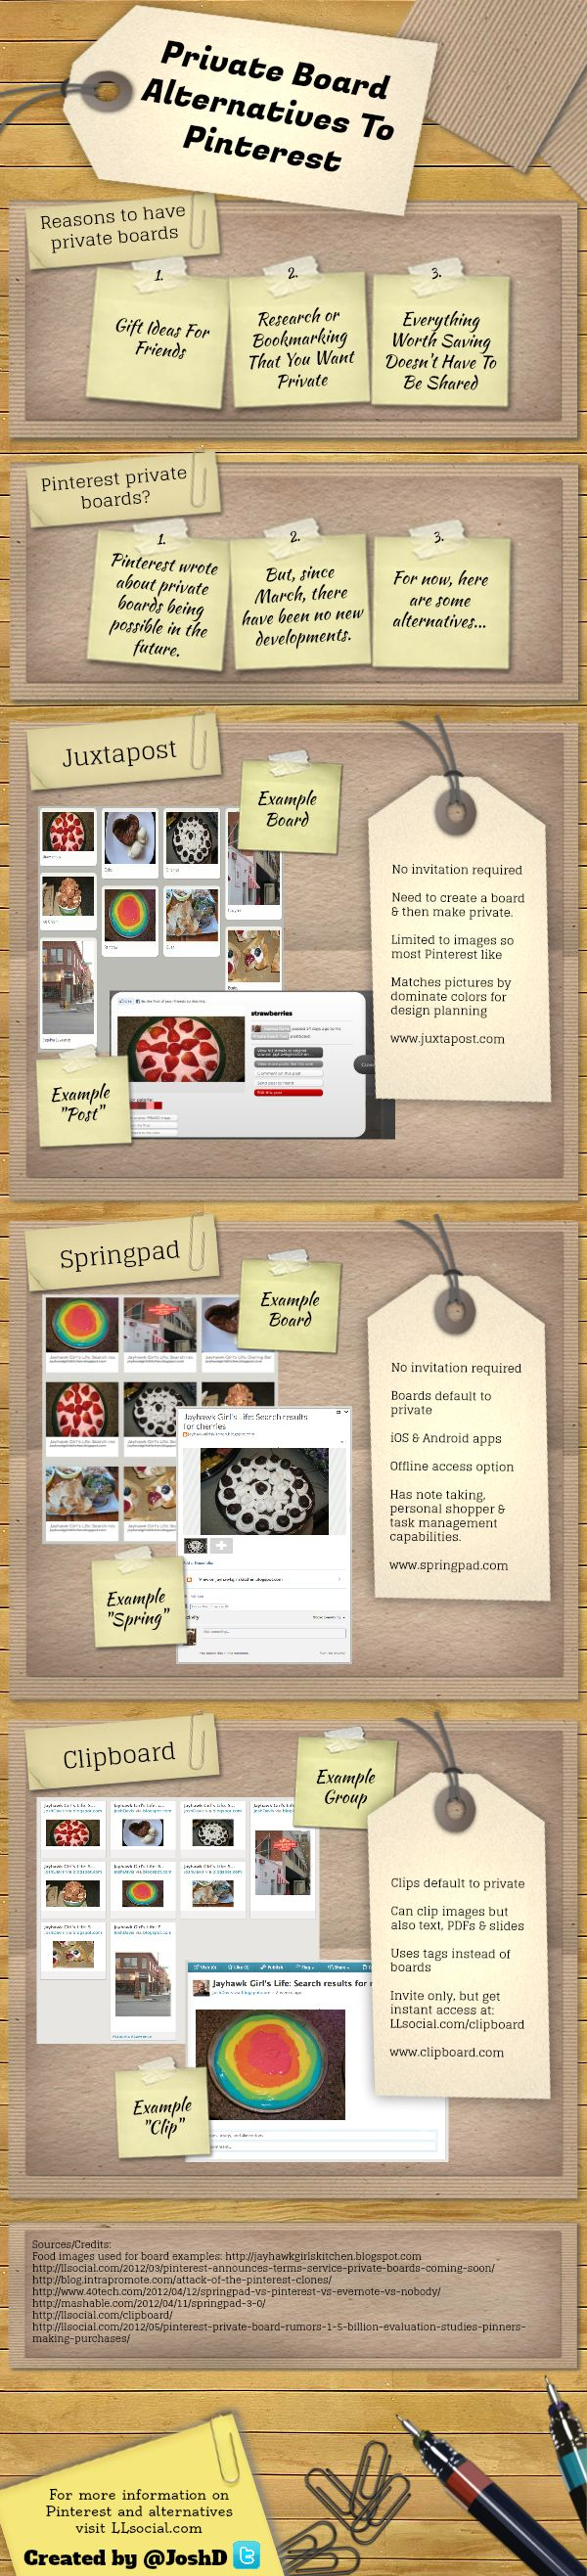 This pin is about the private board alternative to Pinterest. This infography is interesting for understand this social media.